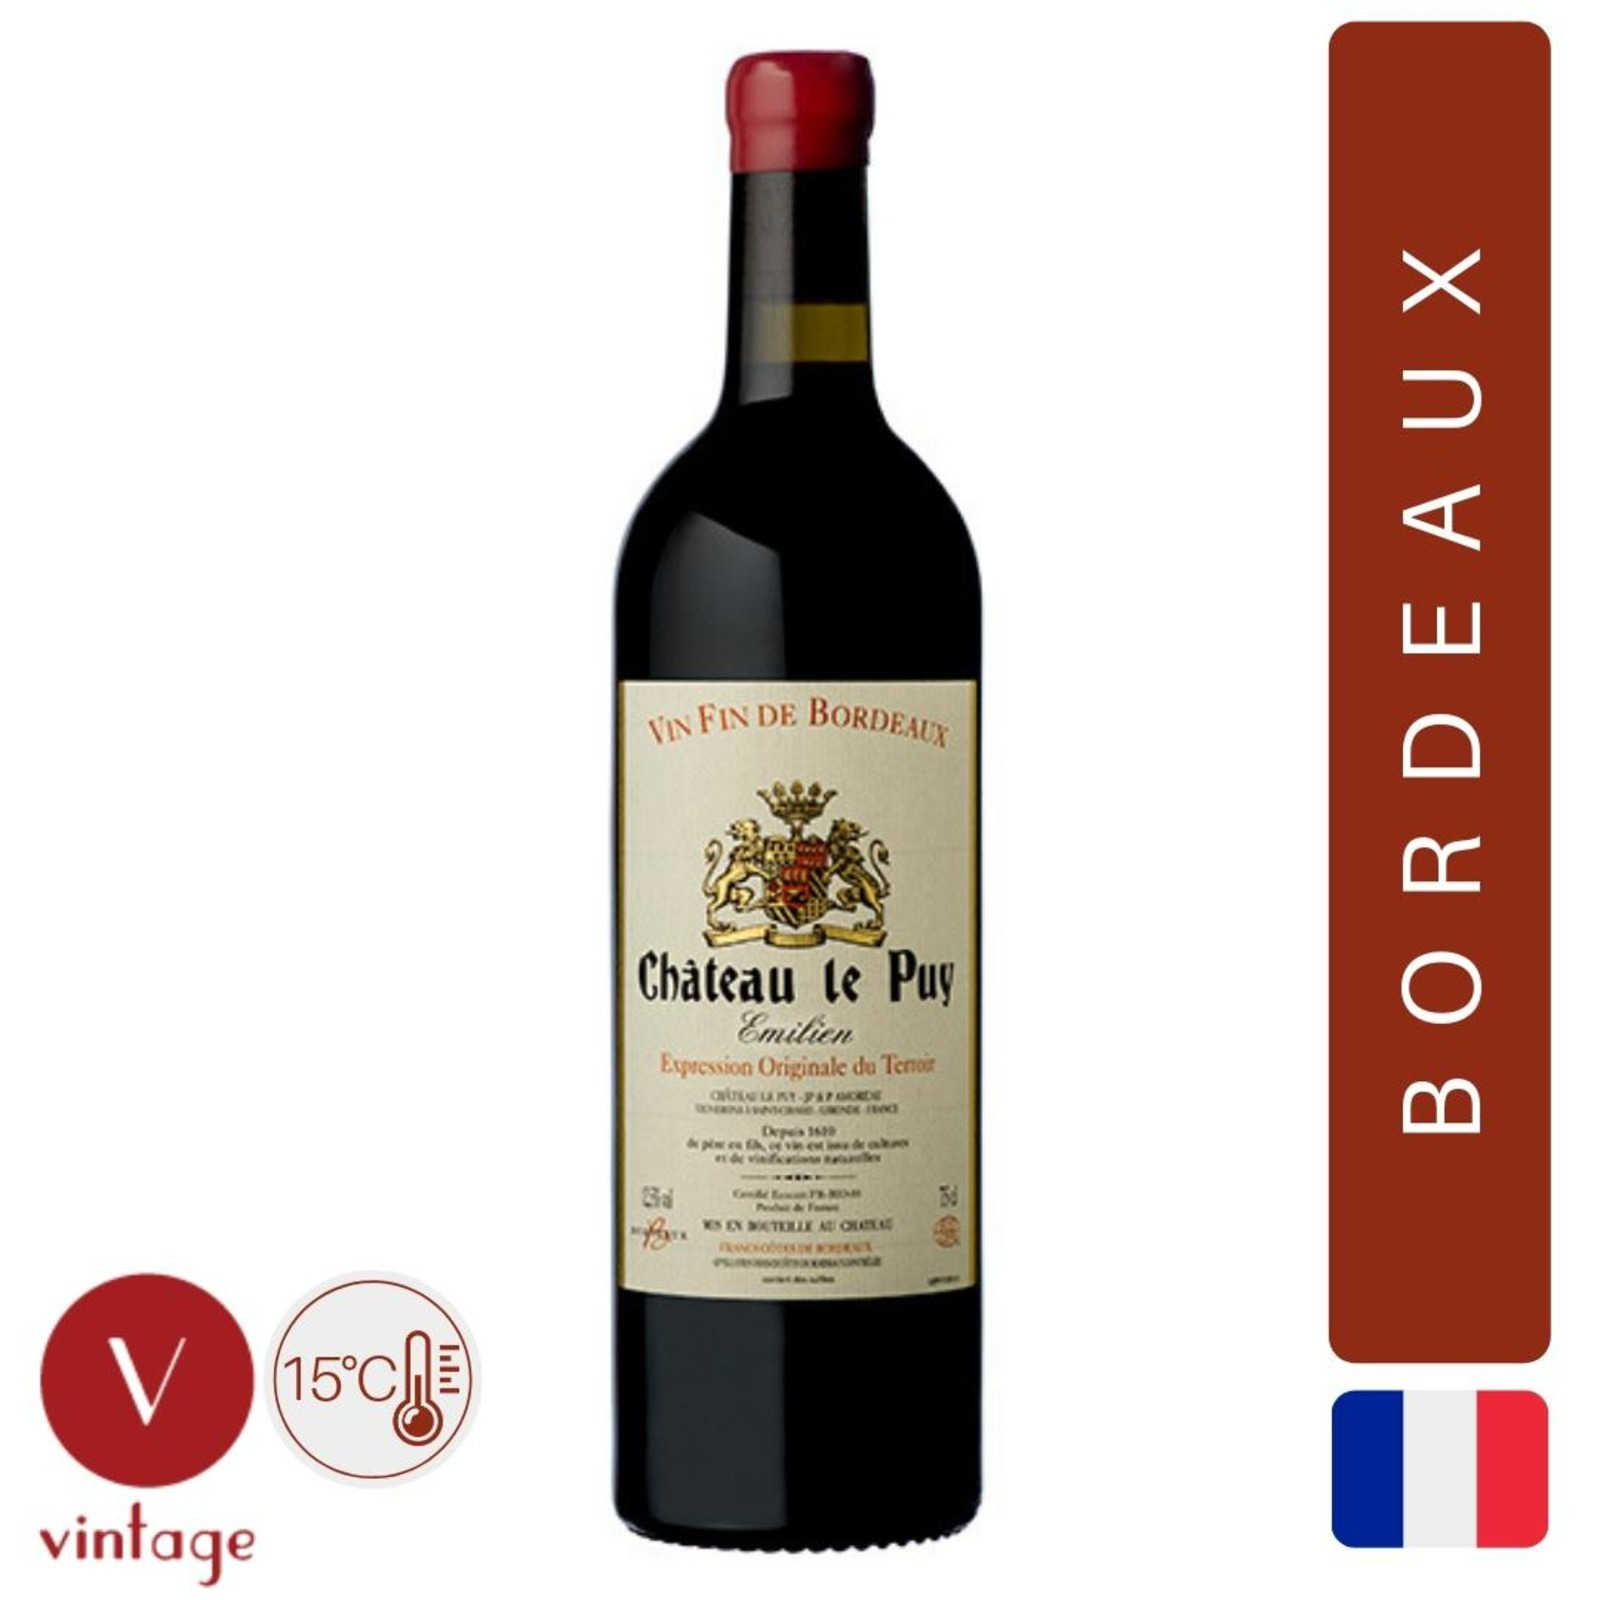 Chateau Le Puy - Emilien - Bordeaux - Red Wine